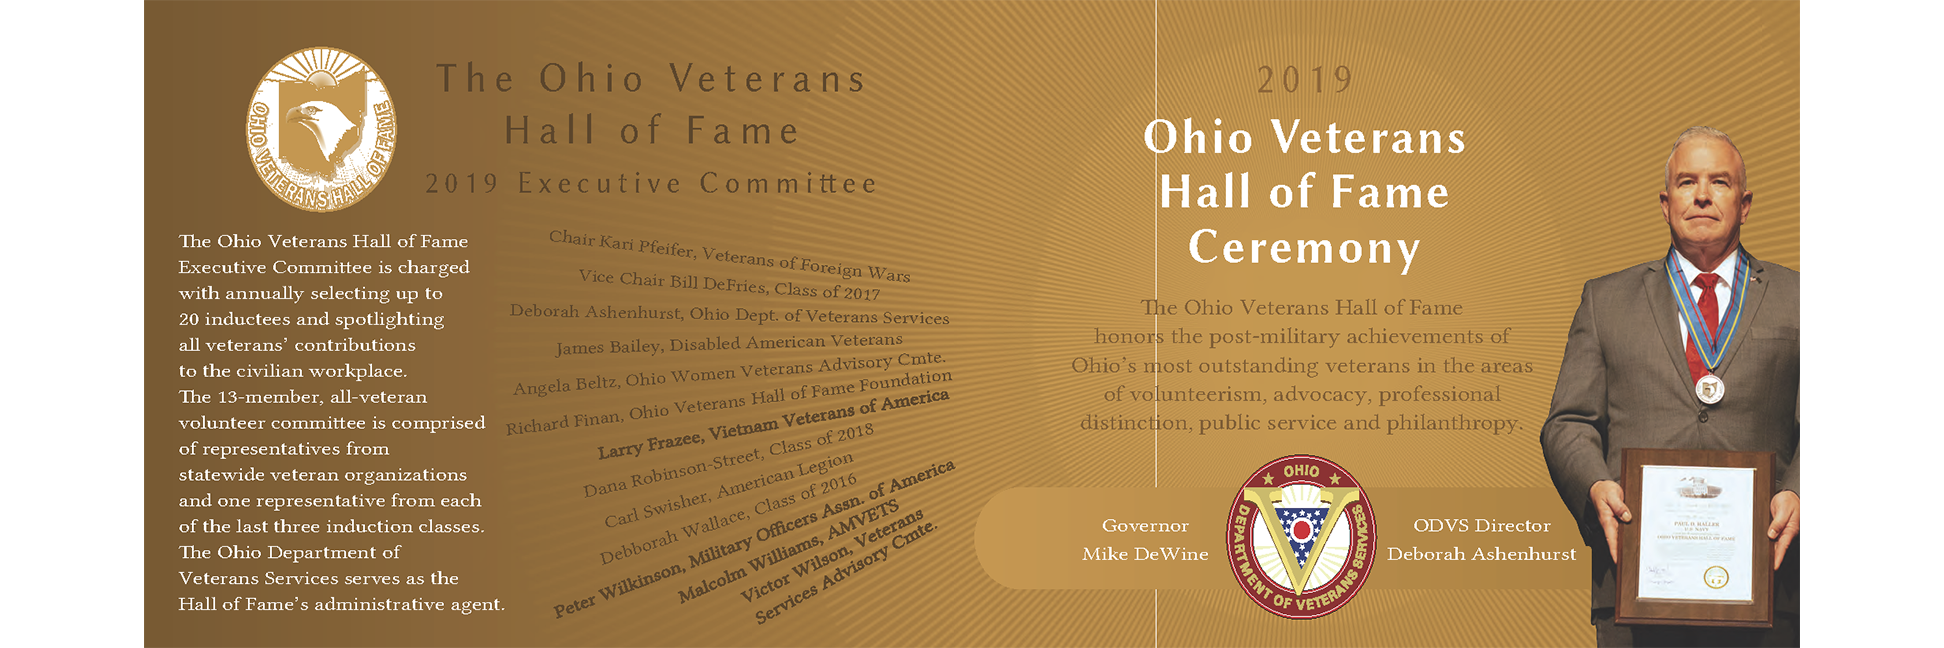 Ohio Veterans Hall of Fame Ceremony 2019.png